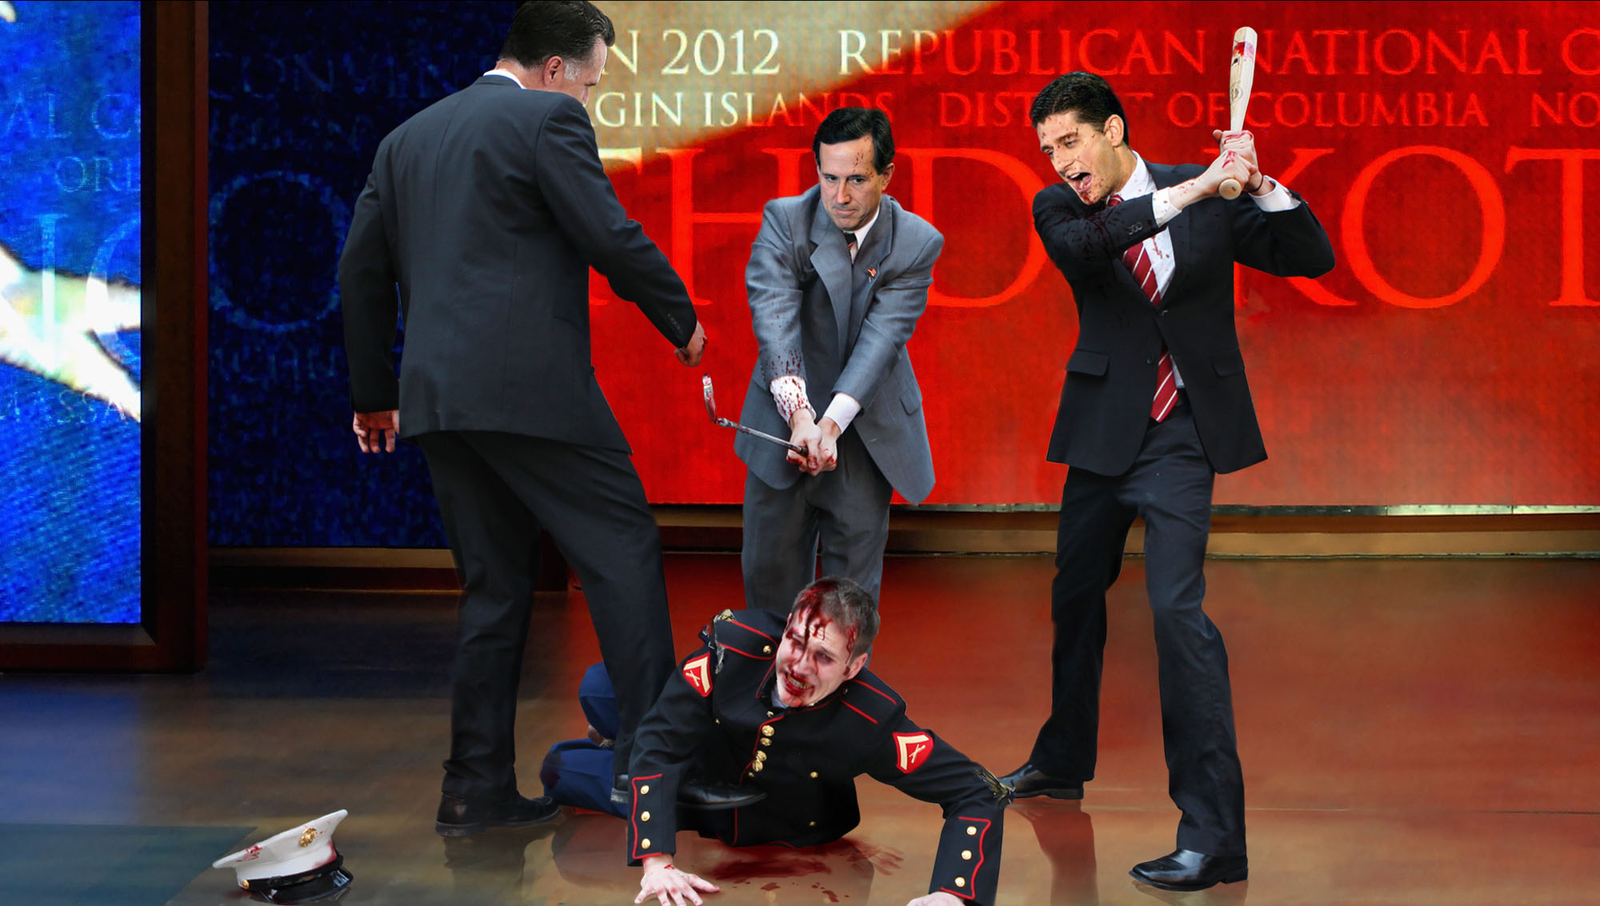 Gay Marine Beaten To Bloody Pulp To Fire Up RNC Crowd